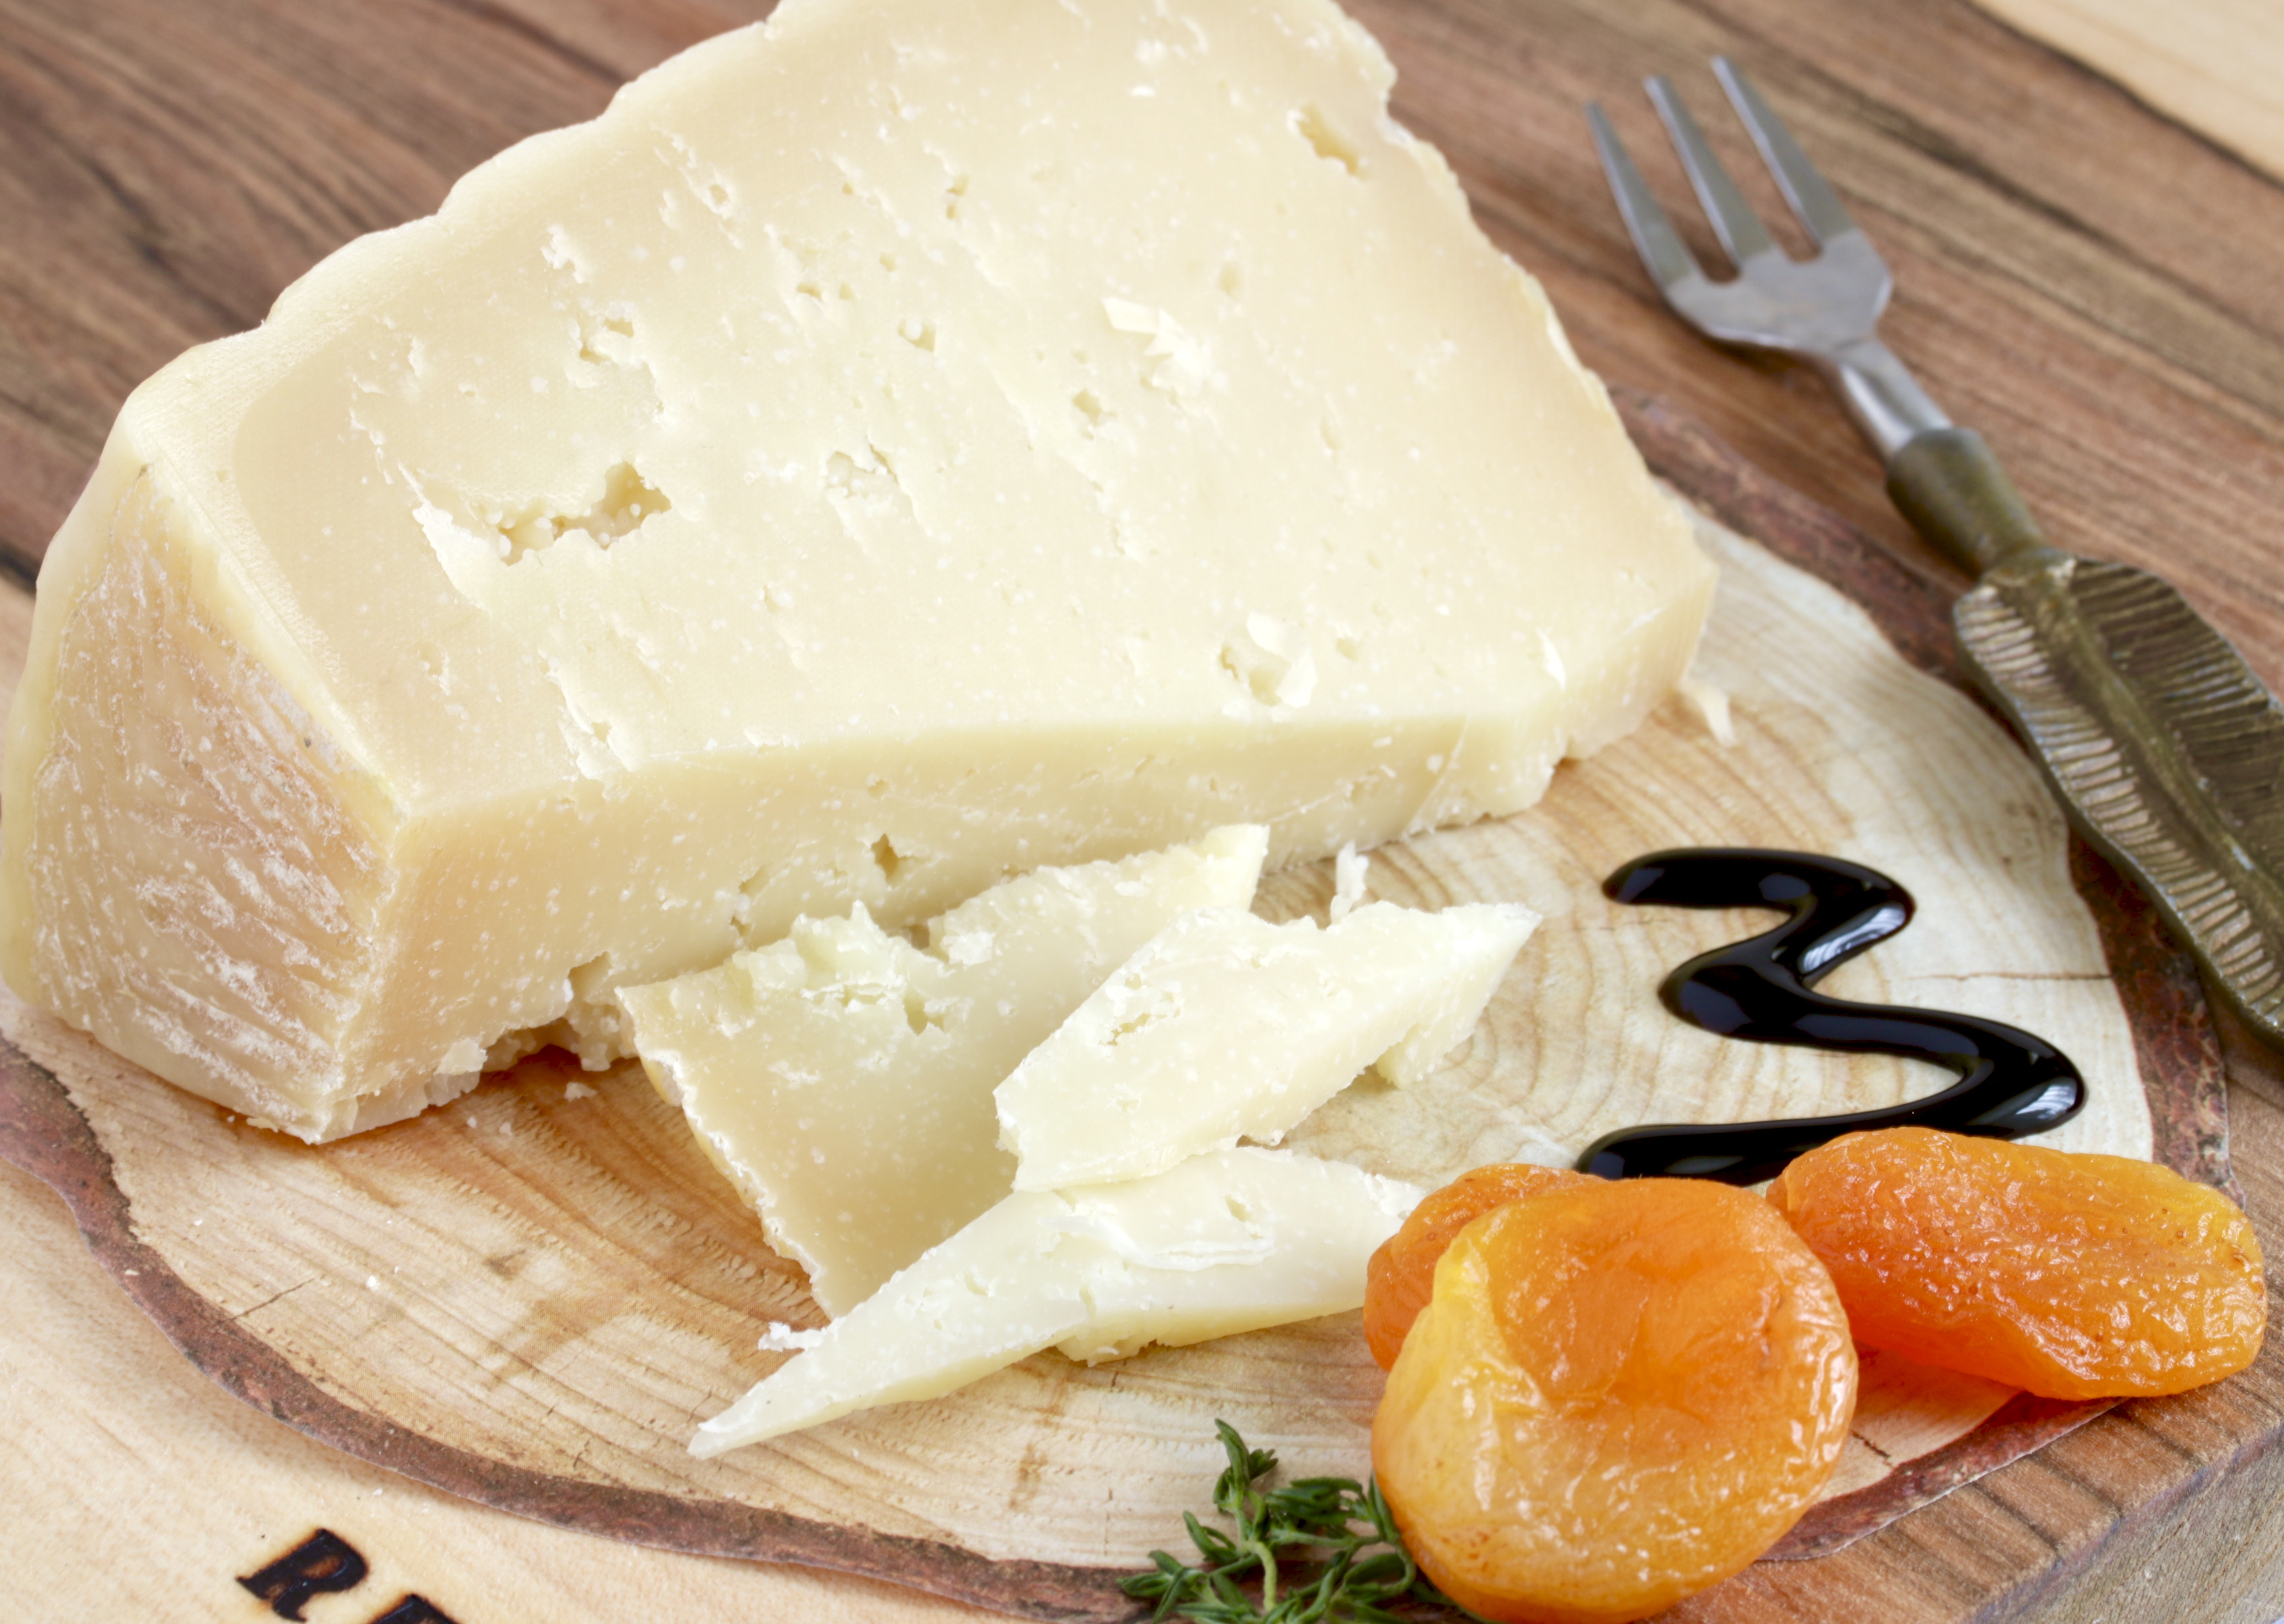 serving of cheese and dried apricots with balsamic glaze